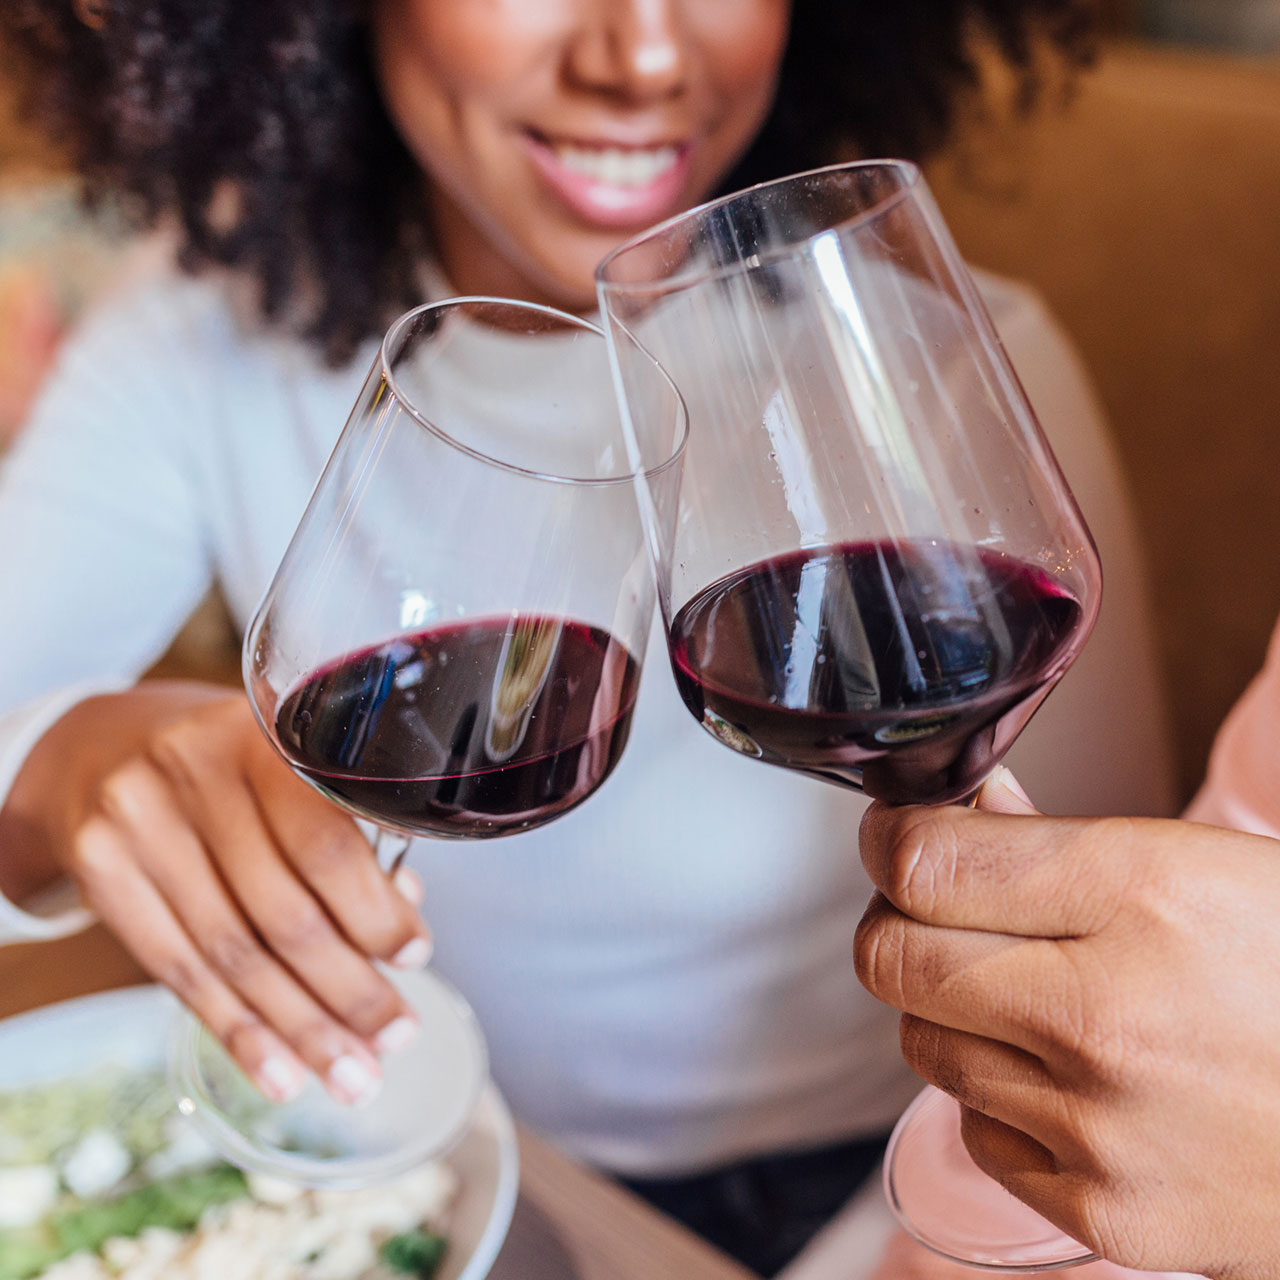 Socialize Luxuriously Two People with Wine in Glasses